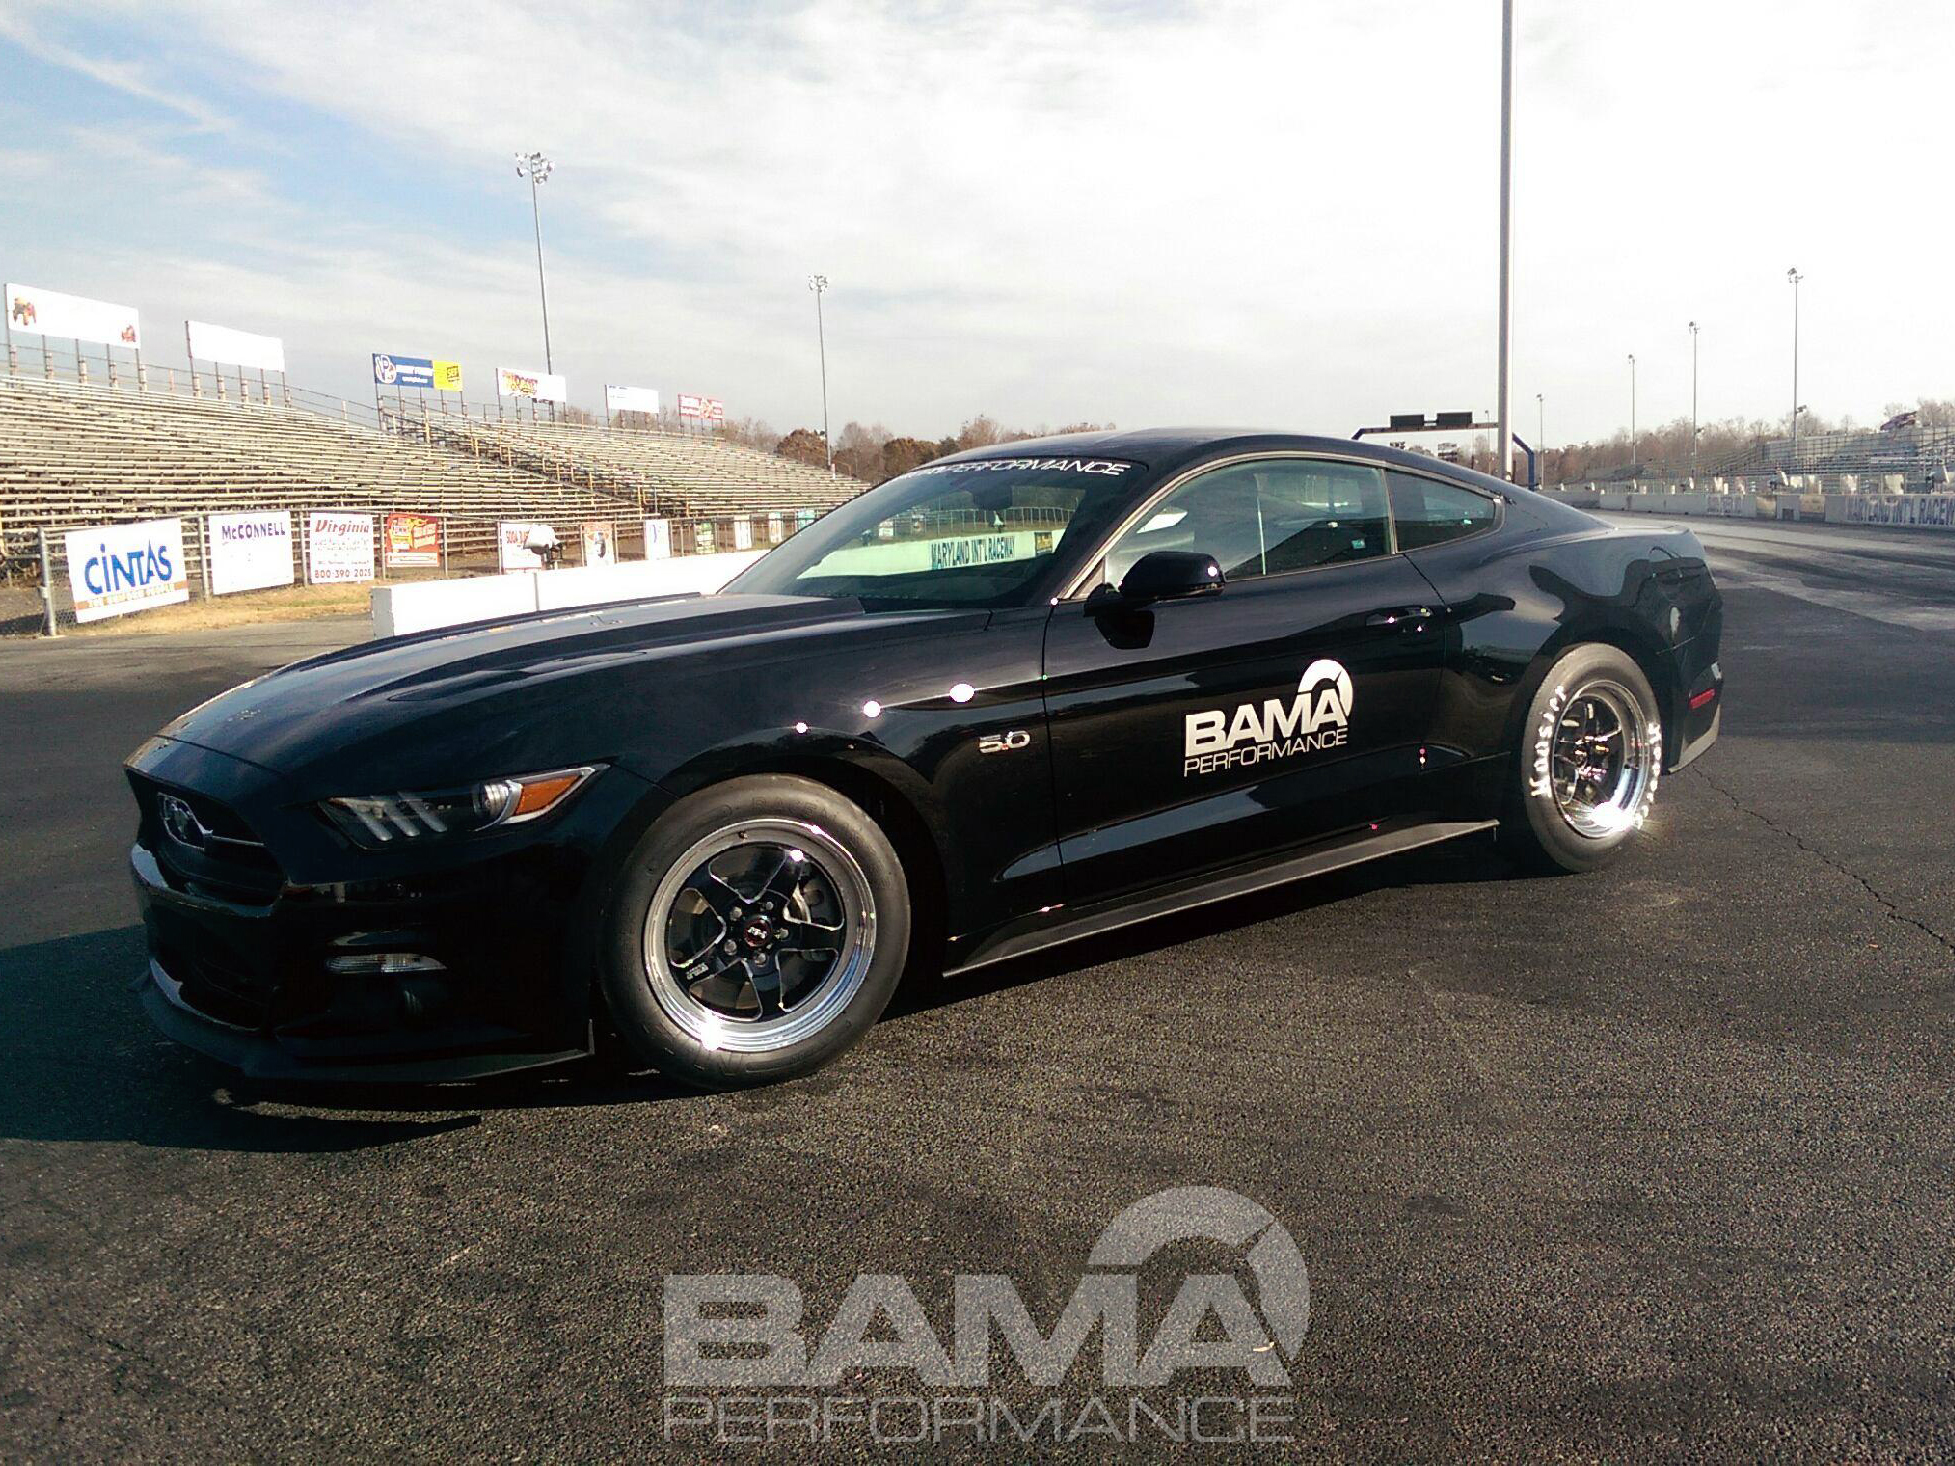 Weight Bama Performance S 9 Second 2017 Mustang Record Reduction